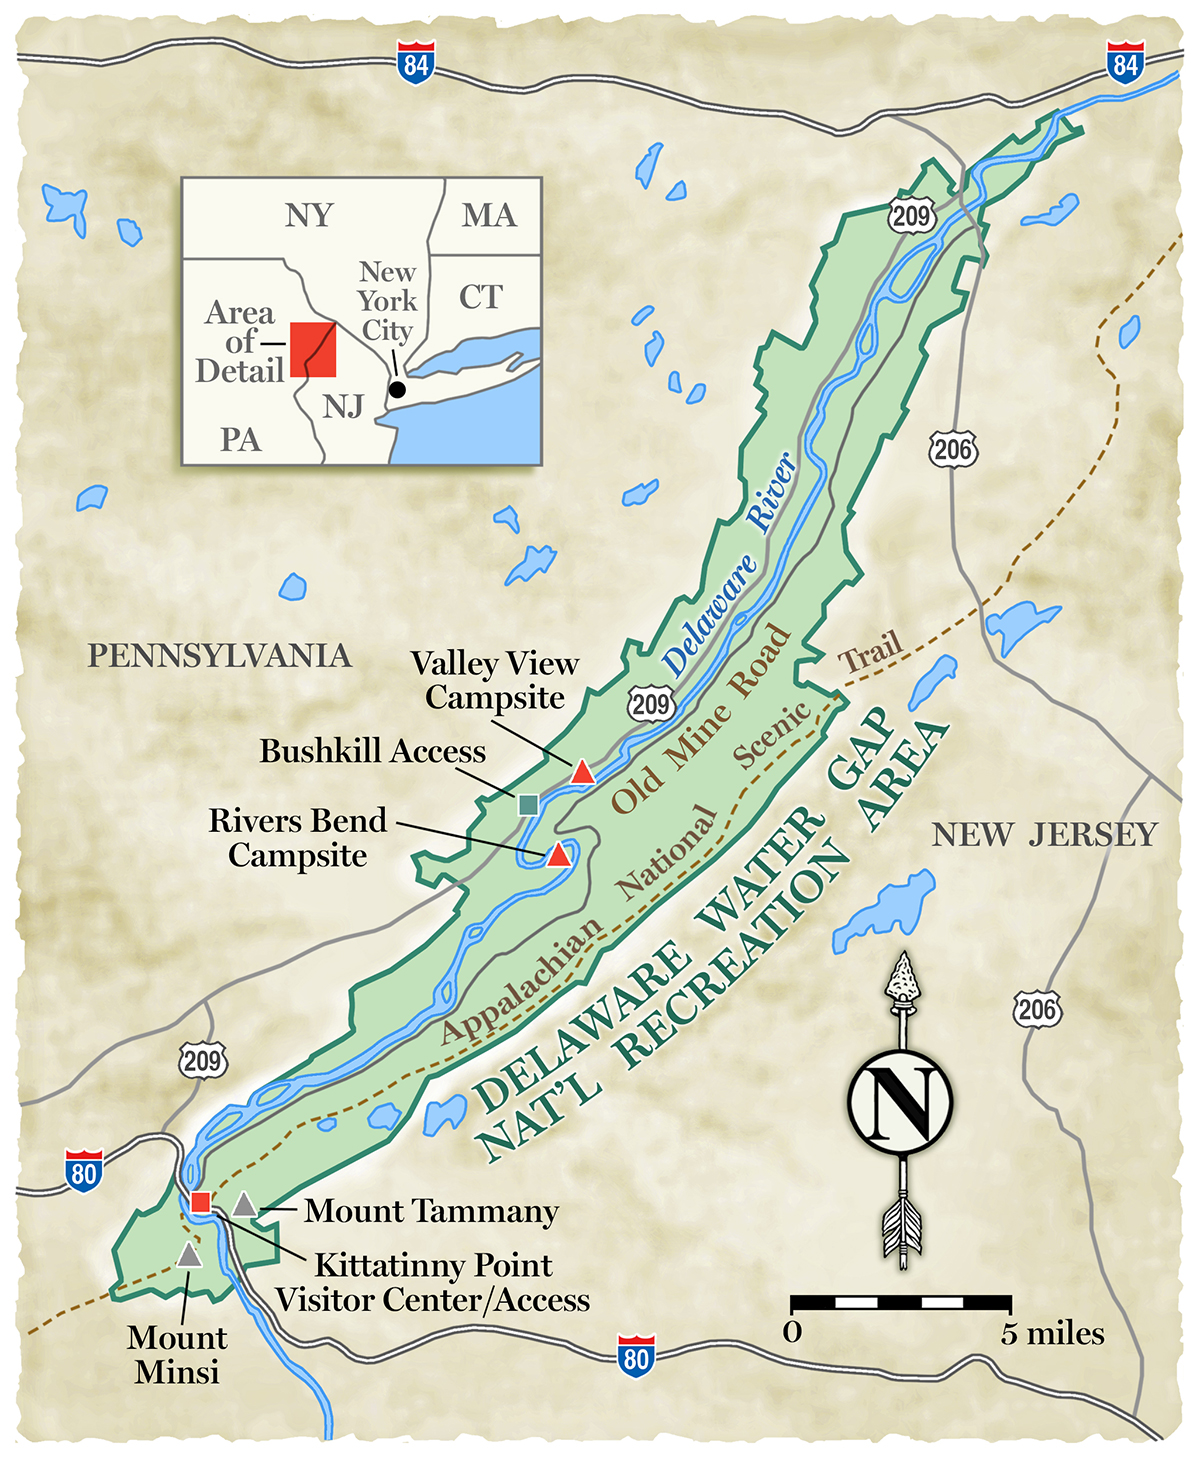 delaware water gap national recreation area map Explore The Delaware Water Gap National Recreation Area delaware water gap national recreation area map